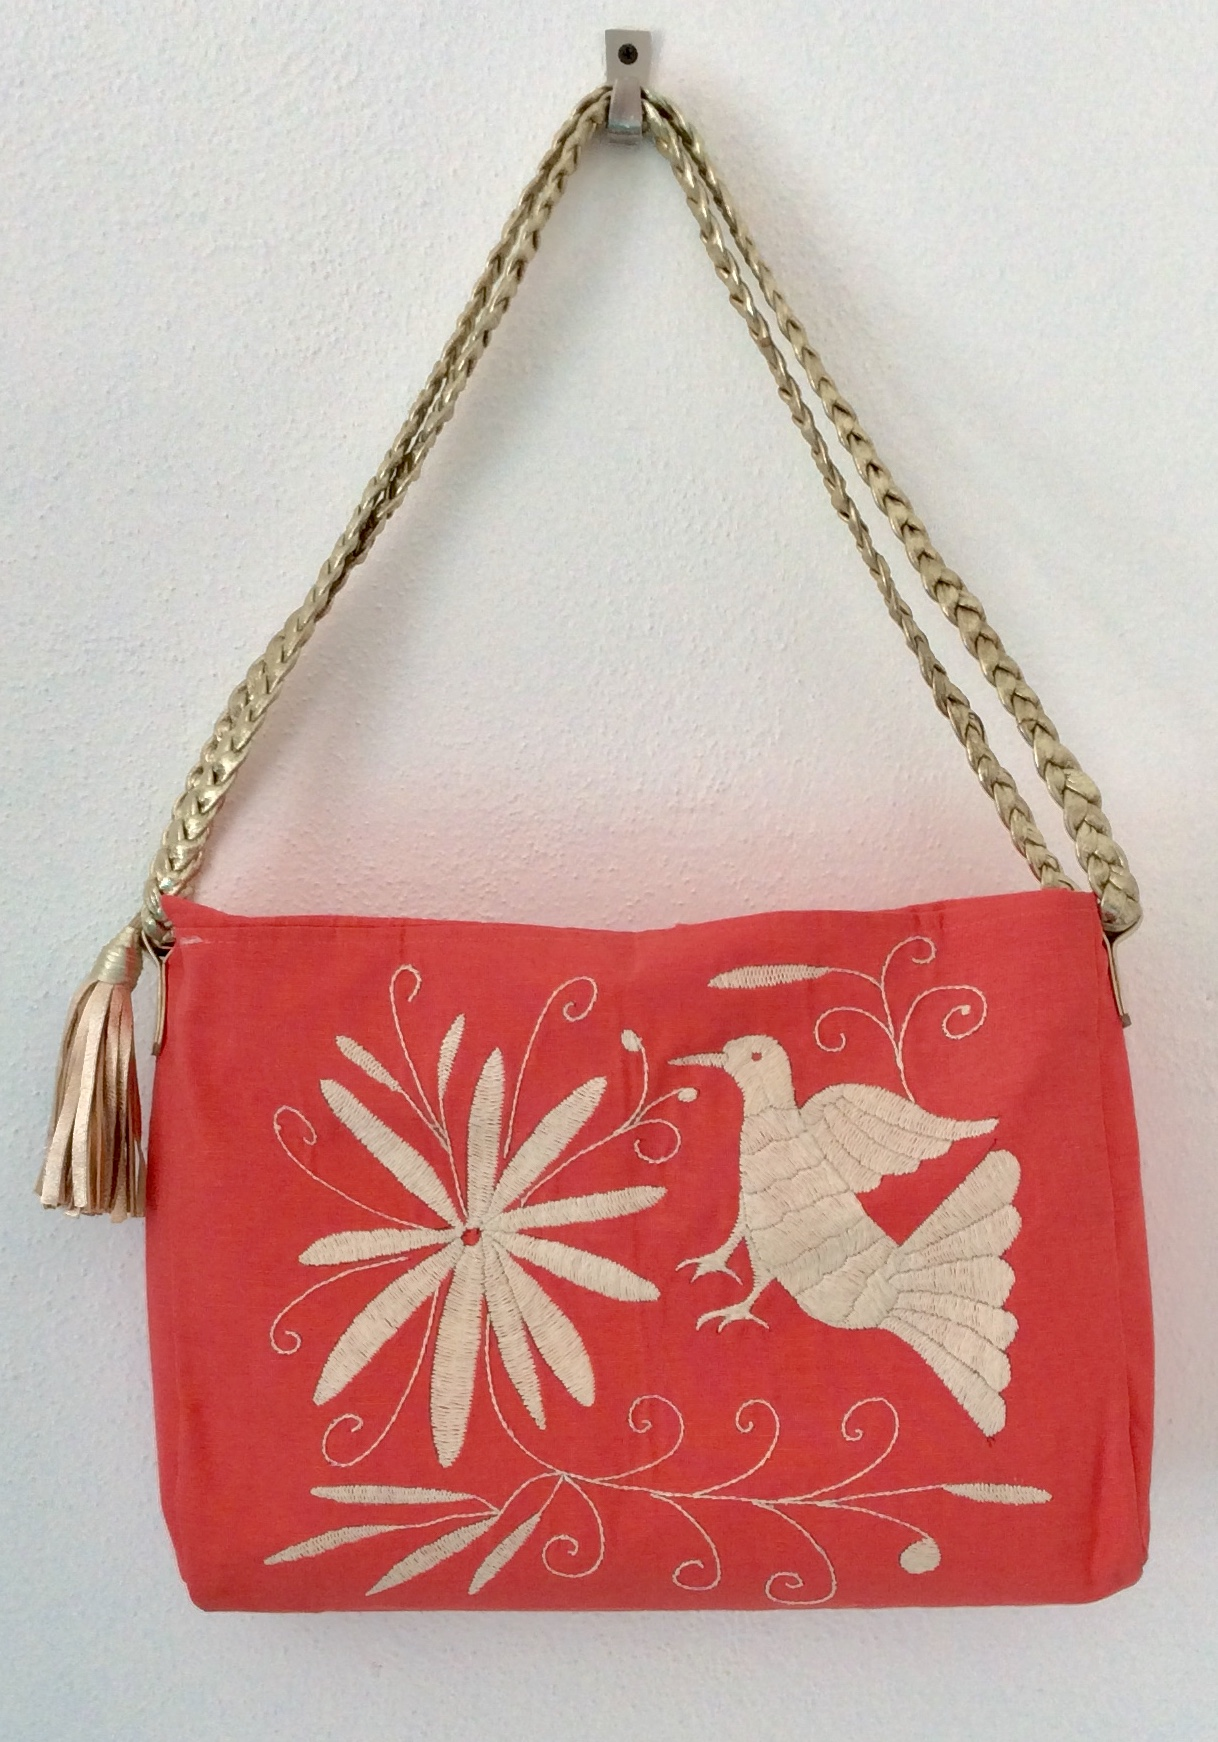 Corazon Sagrado, PuntaMita, ResortWear, ResortLiving,Travel,Visitmexico, Rivieranayarit,  Luxurydestination,  Fairtrade, Slowfashion, MadeinMexico, Otomi Bag, Coral, Embroidery, Handembroidery